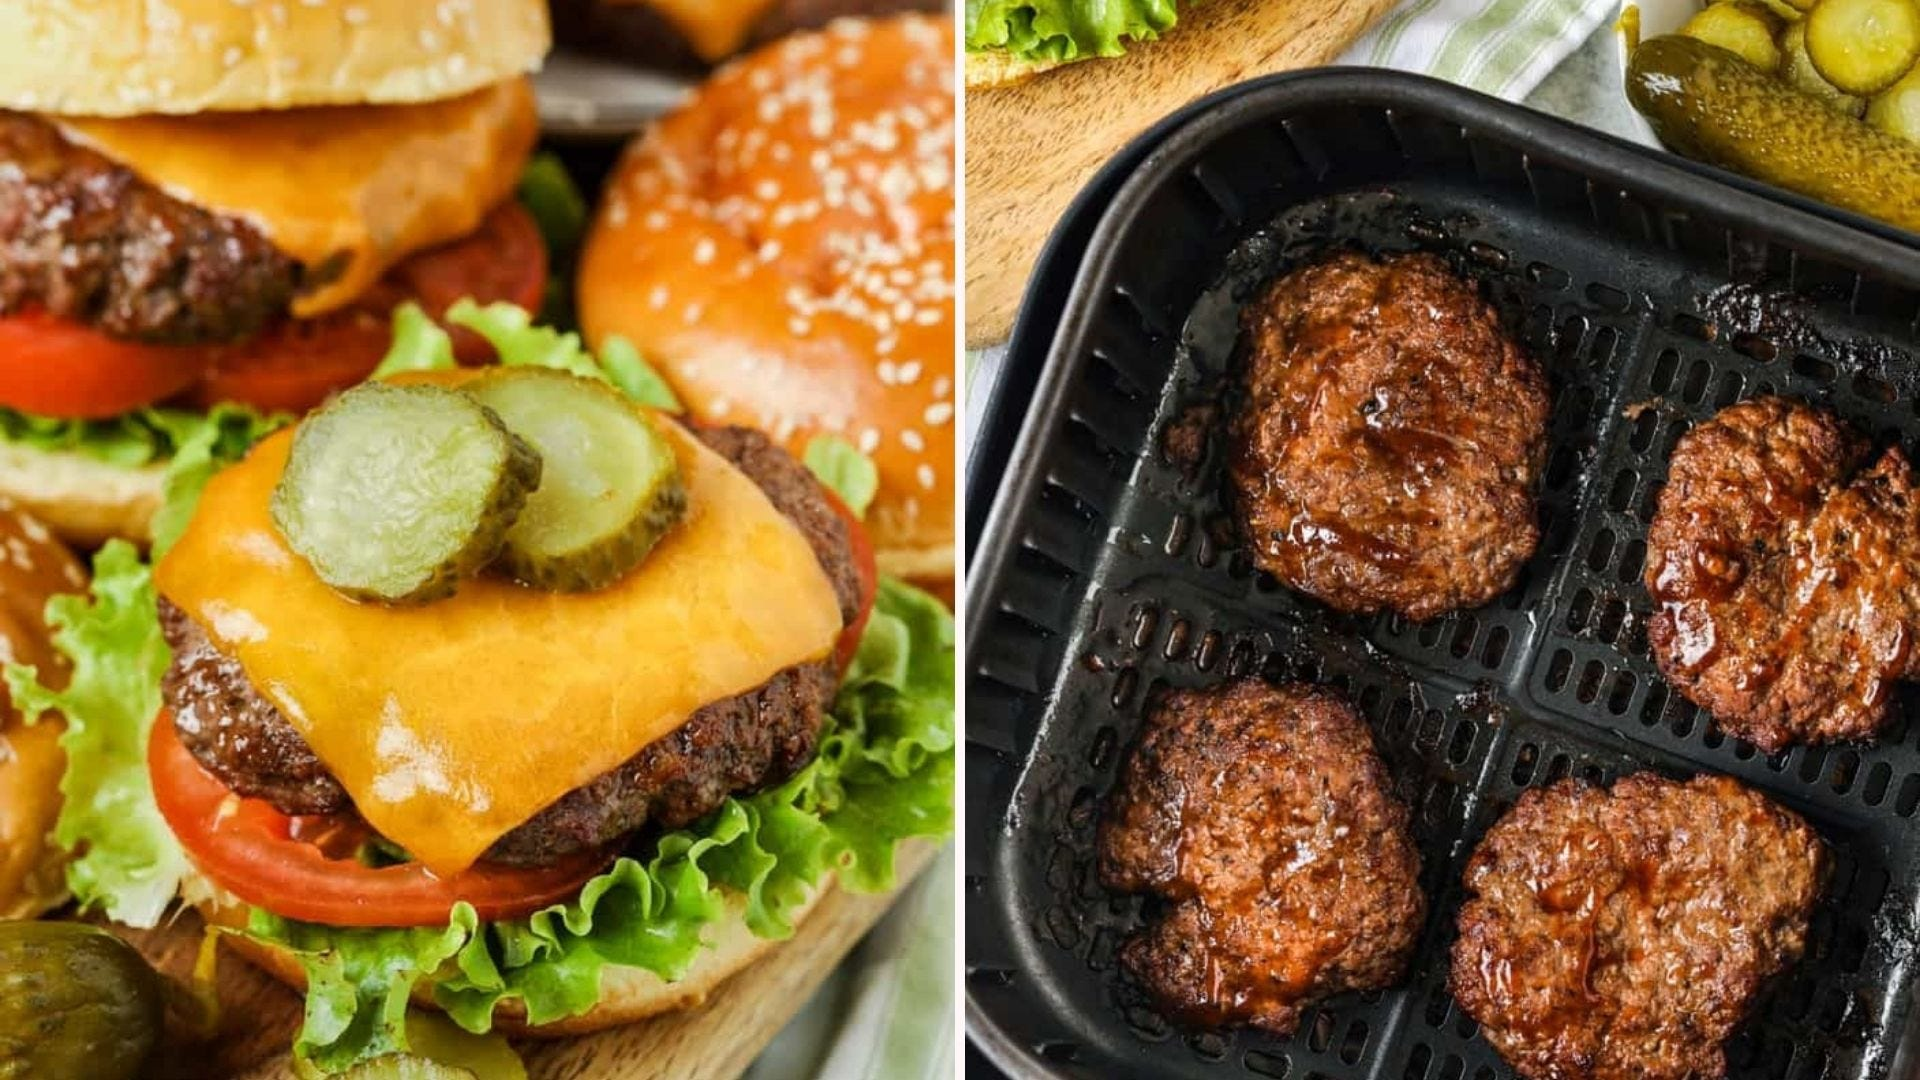 Two side by side images of homemade burgers. The left image is of a put together burger stacked with pickles lettuce and tomatoes, and the right image is of four burger patties that just finished cooking in an air fryer compartment.